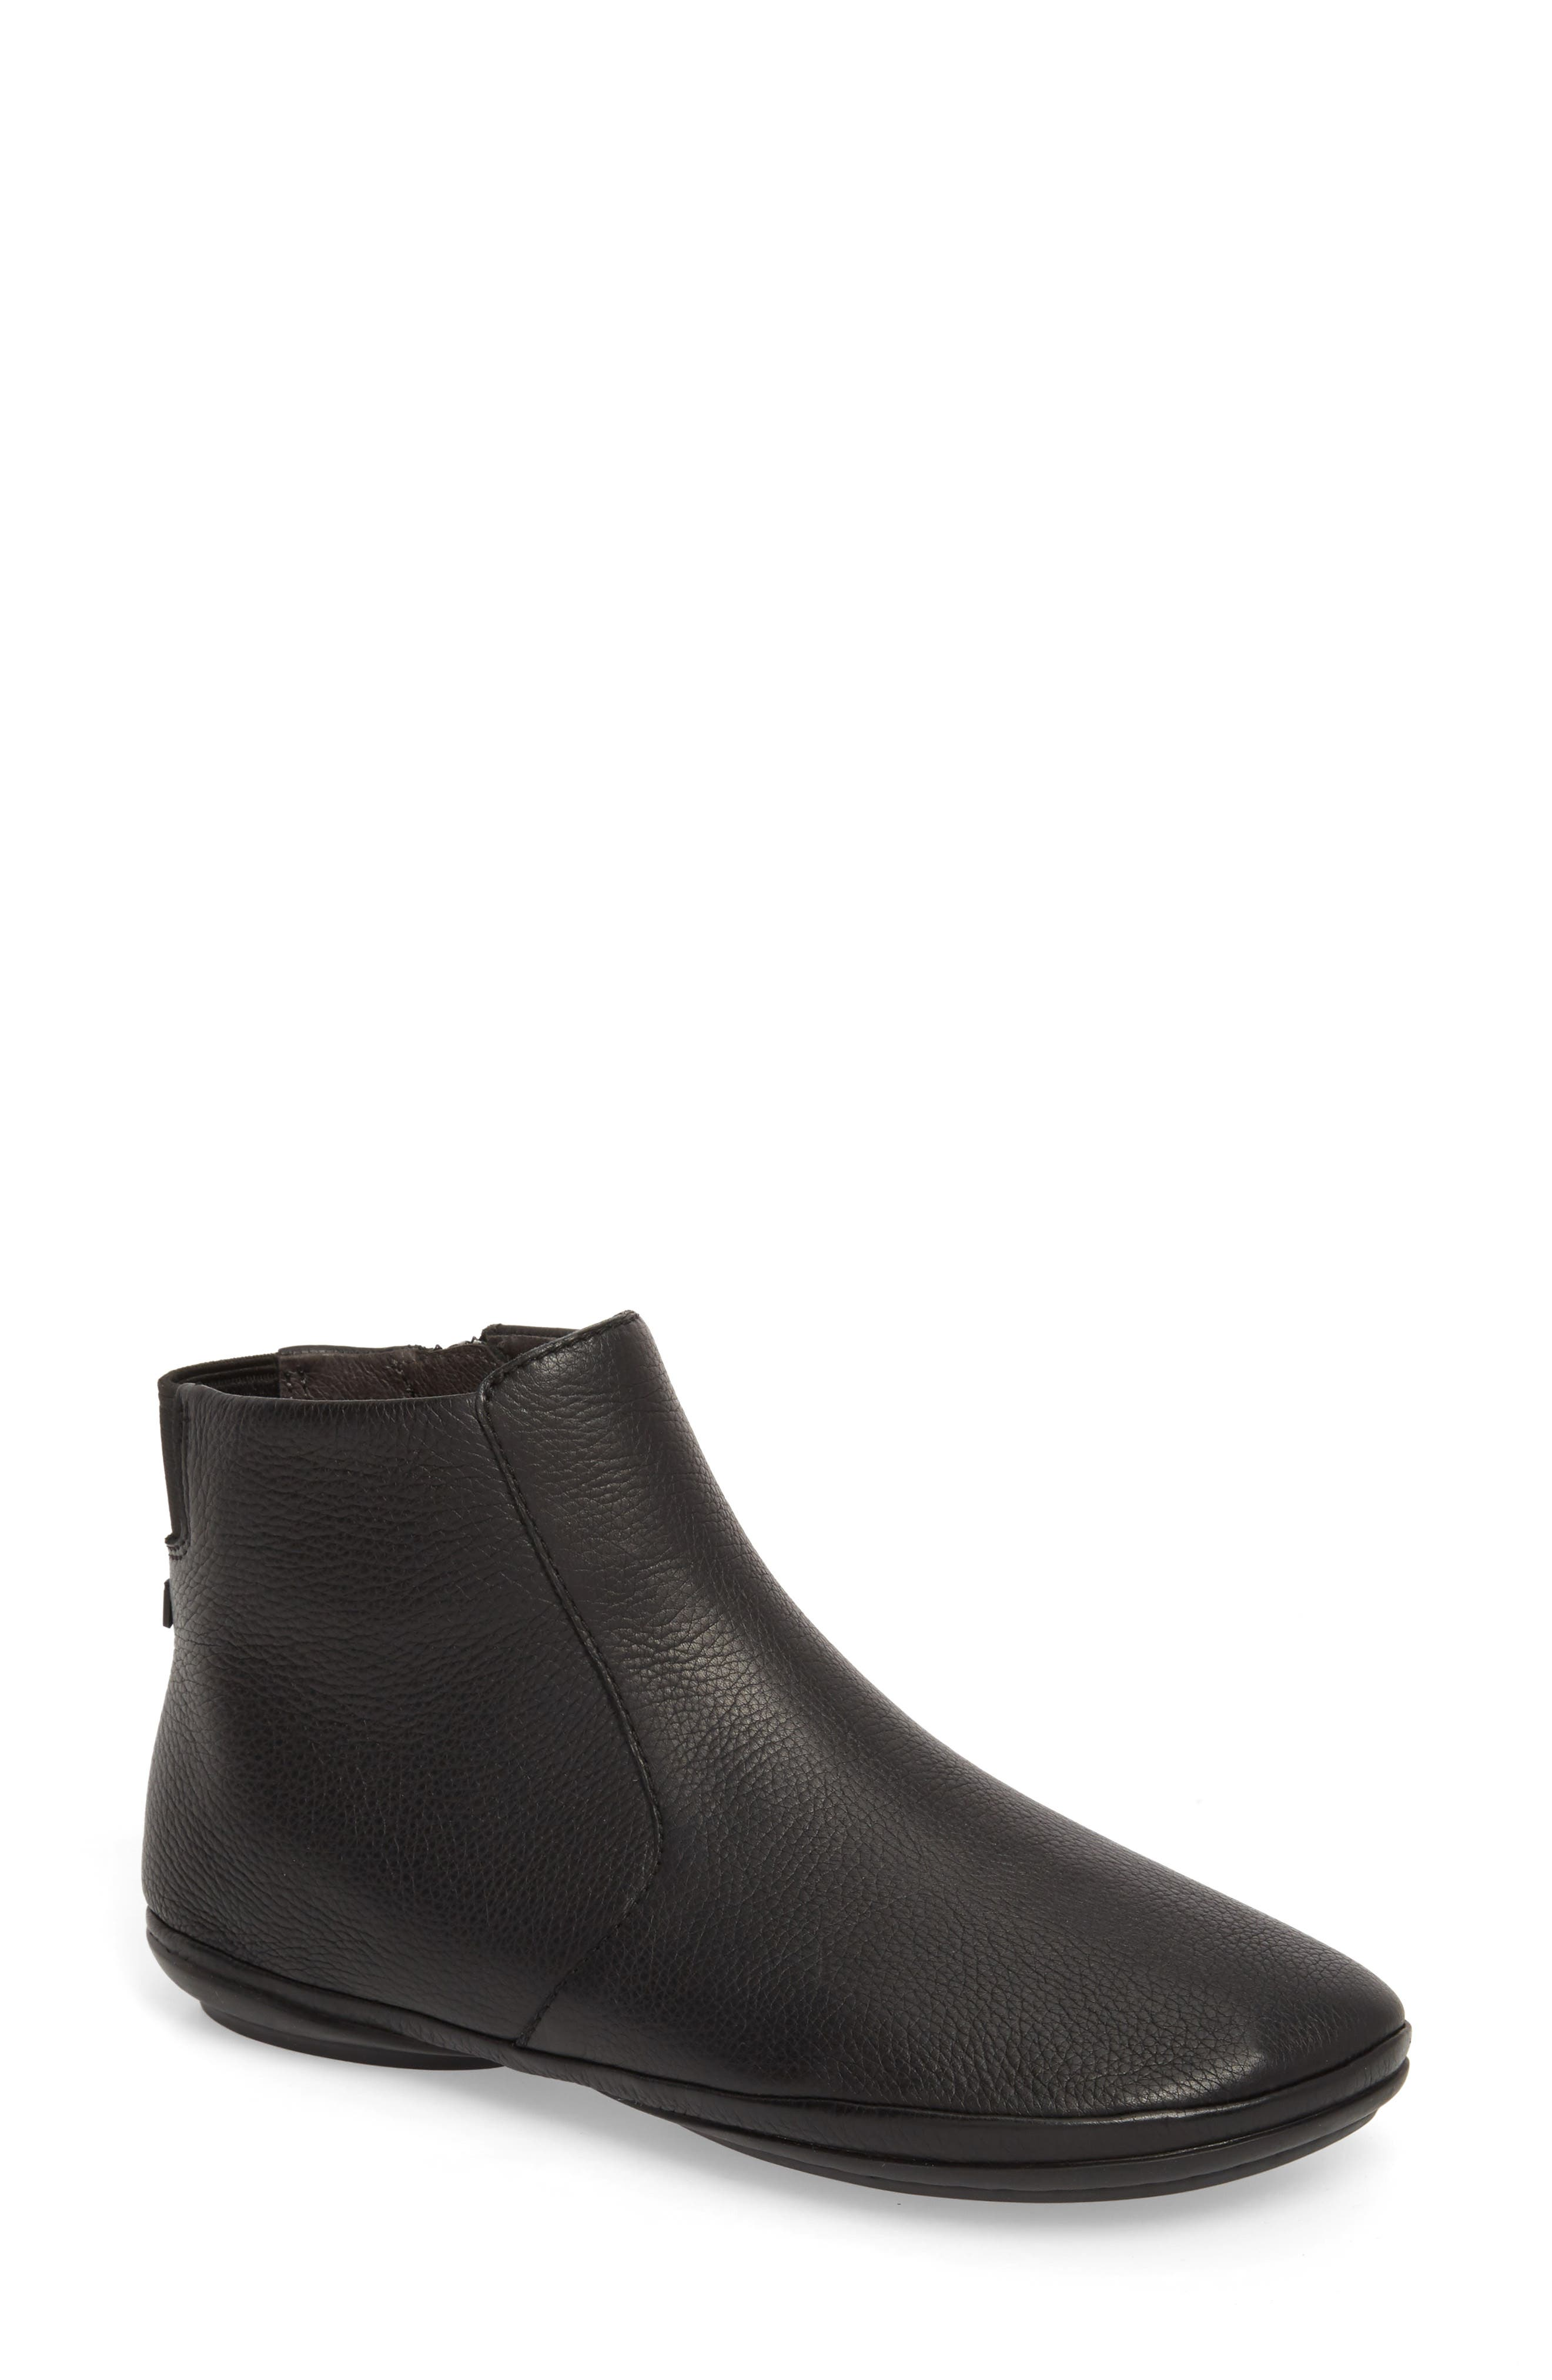 Right Nina Bootie,                         Main,                         color, BLACK LEATHER